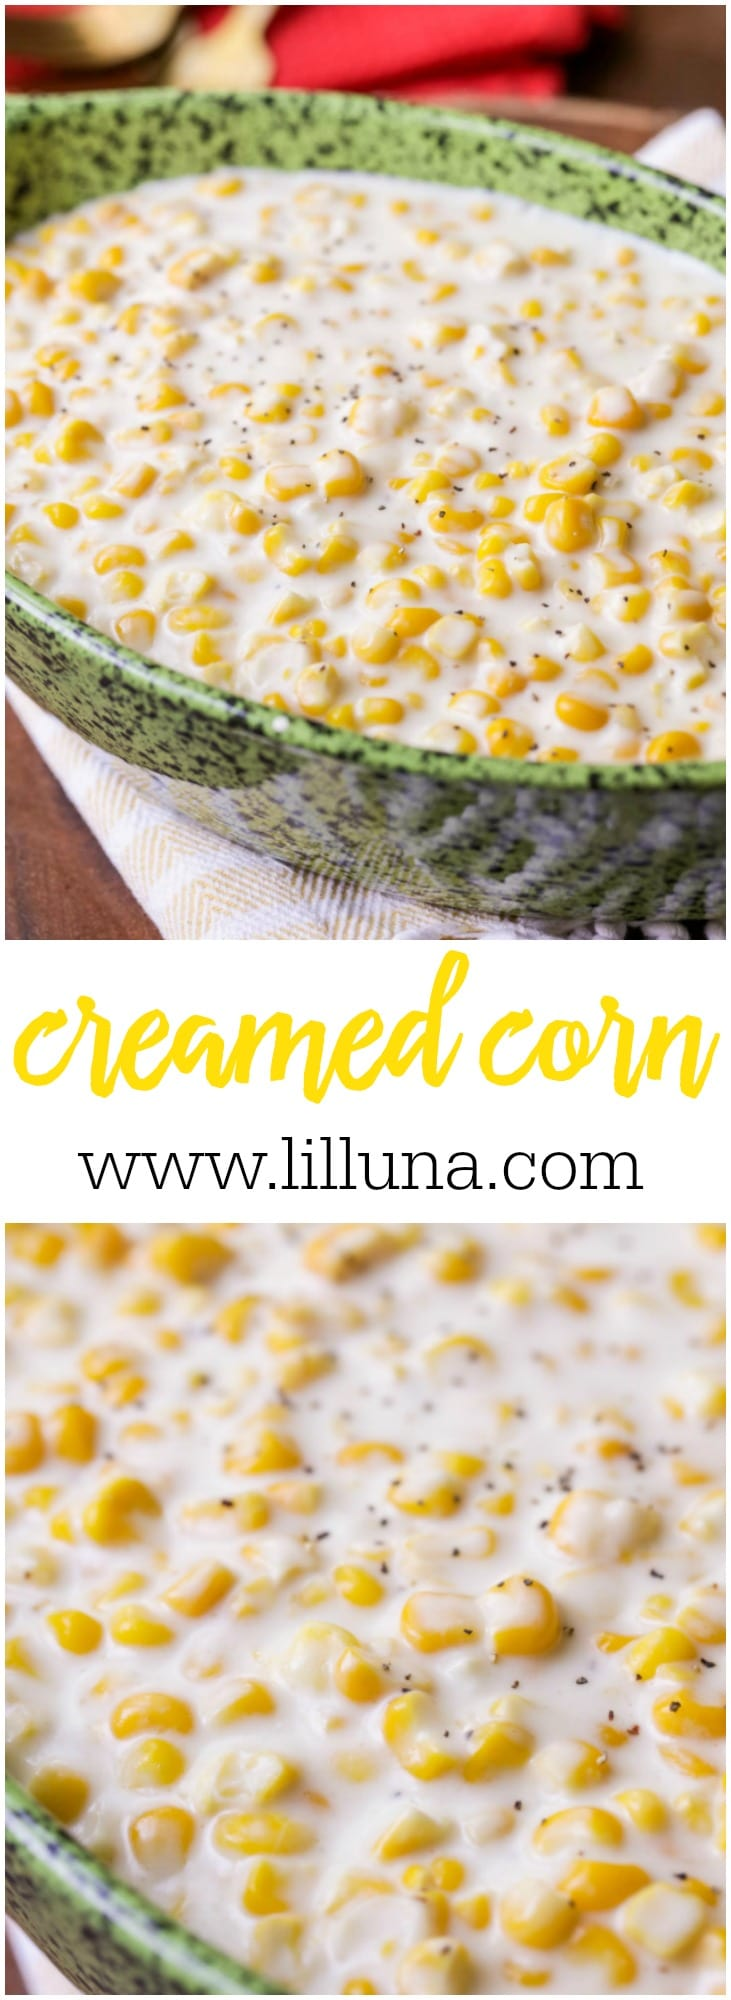 Creamed Corn - a delicious side dish filled with cream, butter and cheese making it perfect for anyone who loves corn!